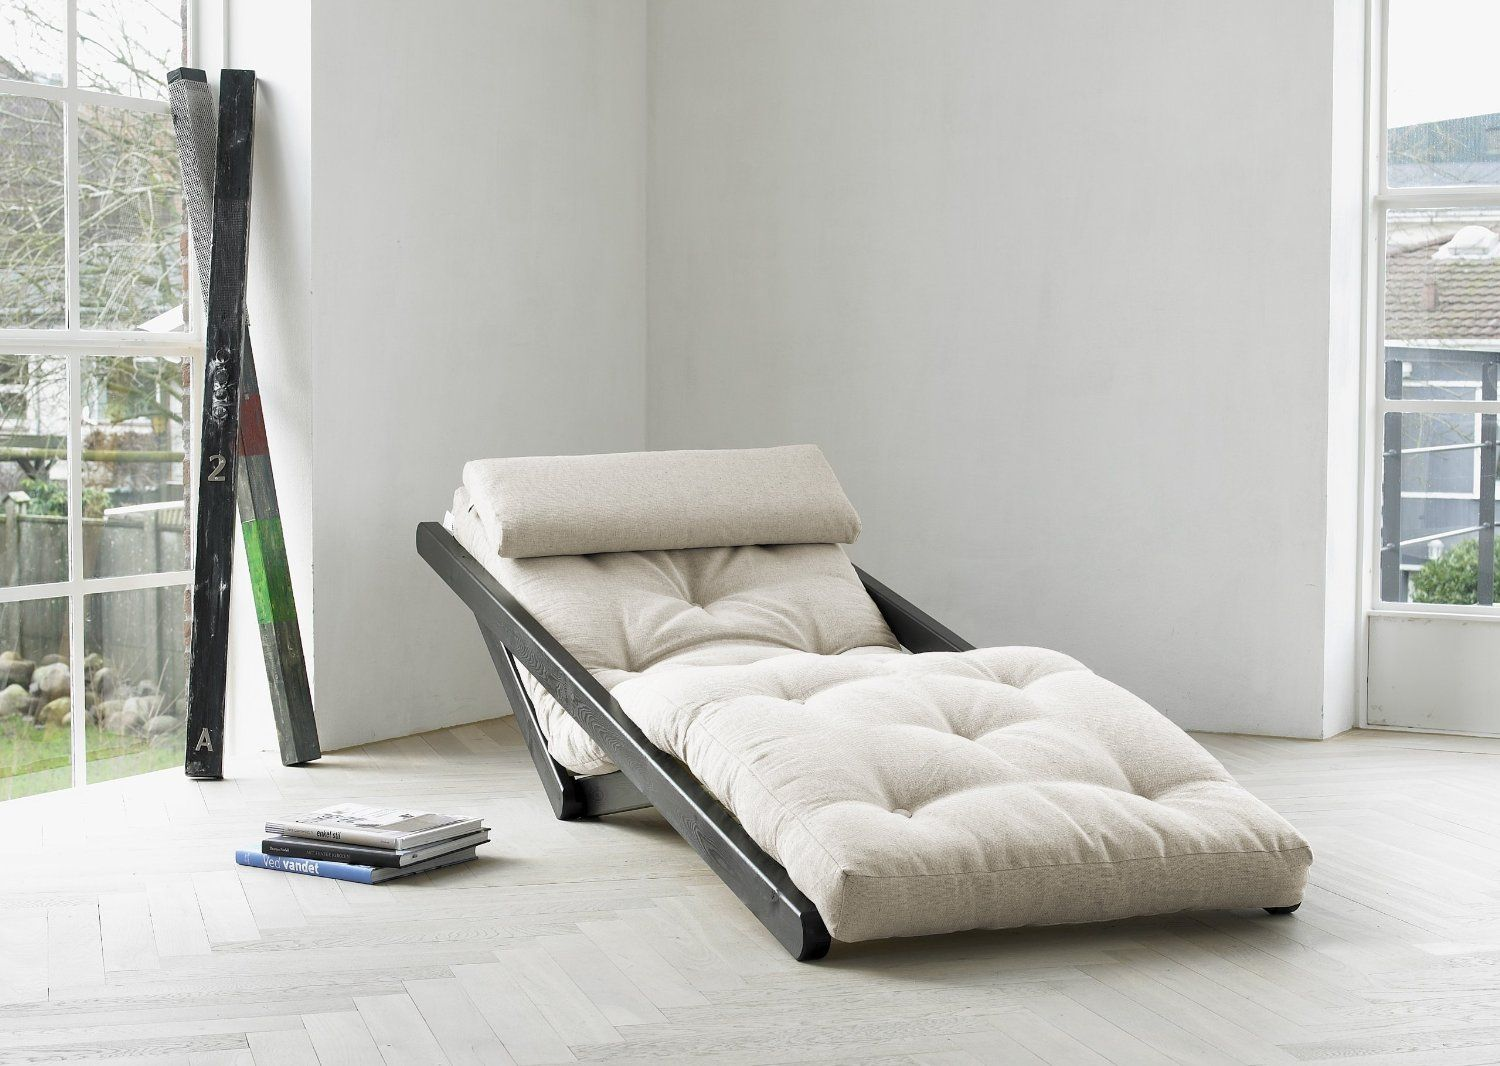 Elegant Futons Are Not Easy To Come By I Only Featured One In The Past This Called Figo Is Another Futon Idea Quite Like Mainly Because It Can